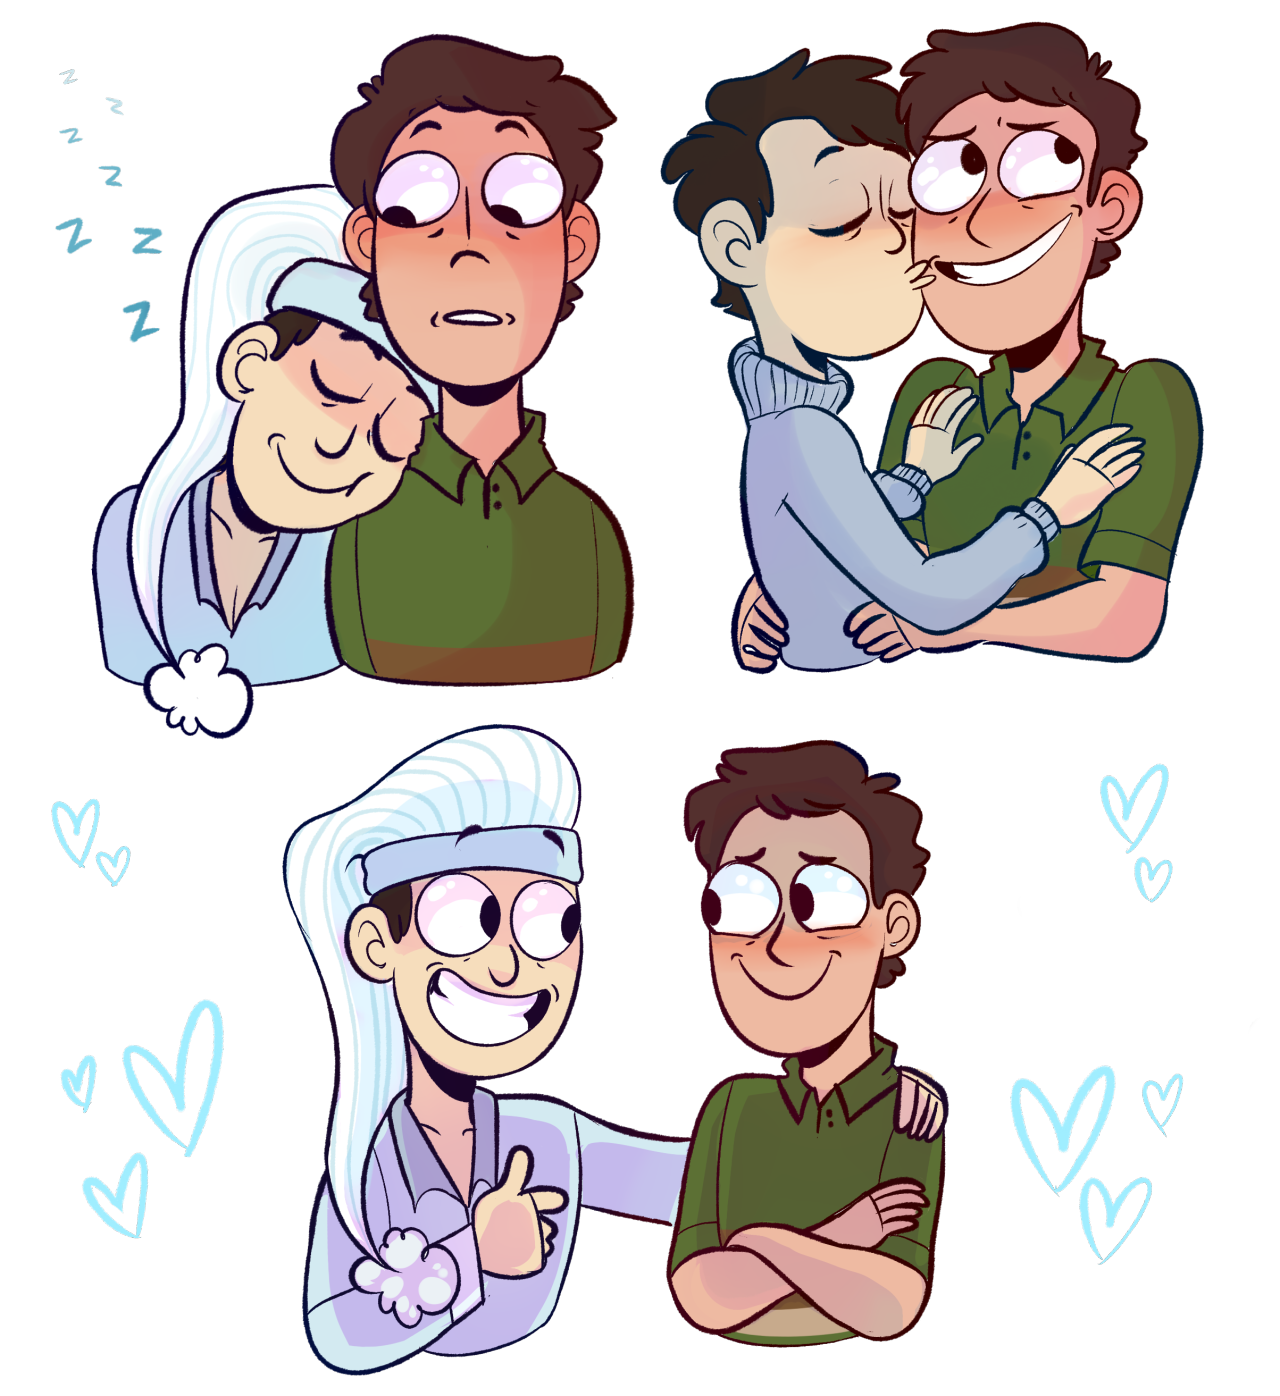 Uncle clipart lgbt family. Art jerry bein a